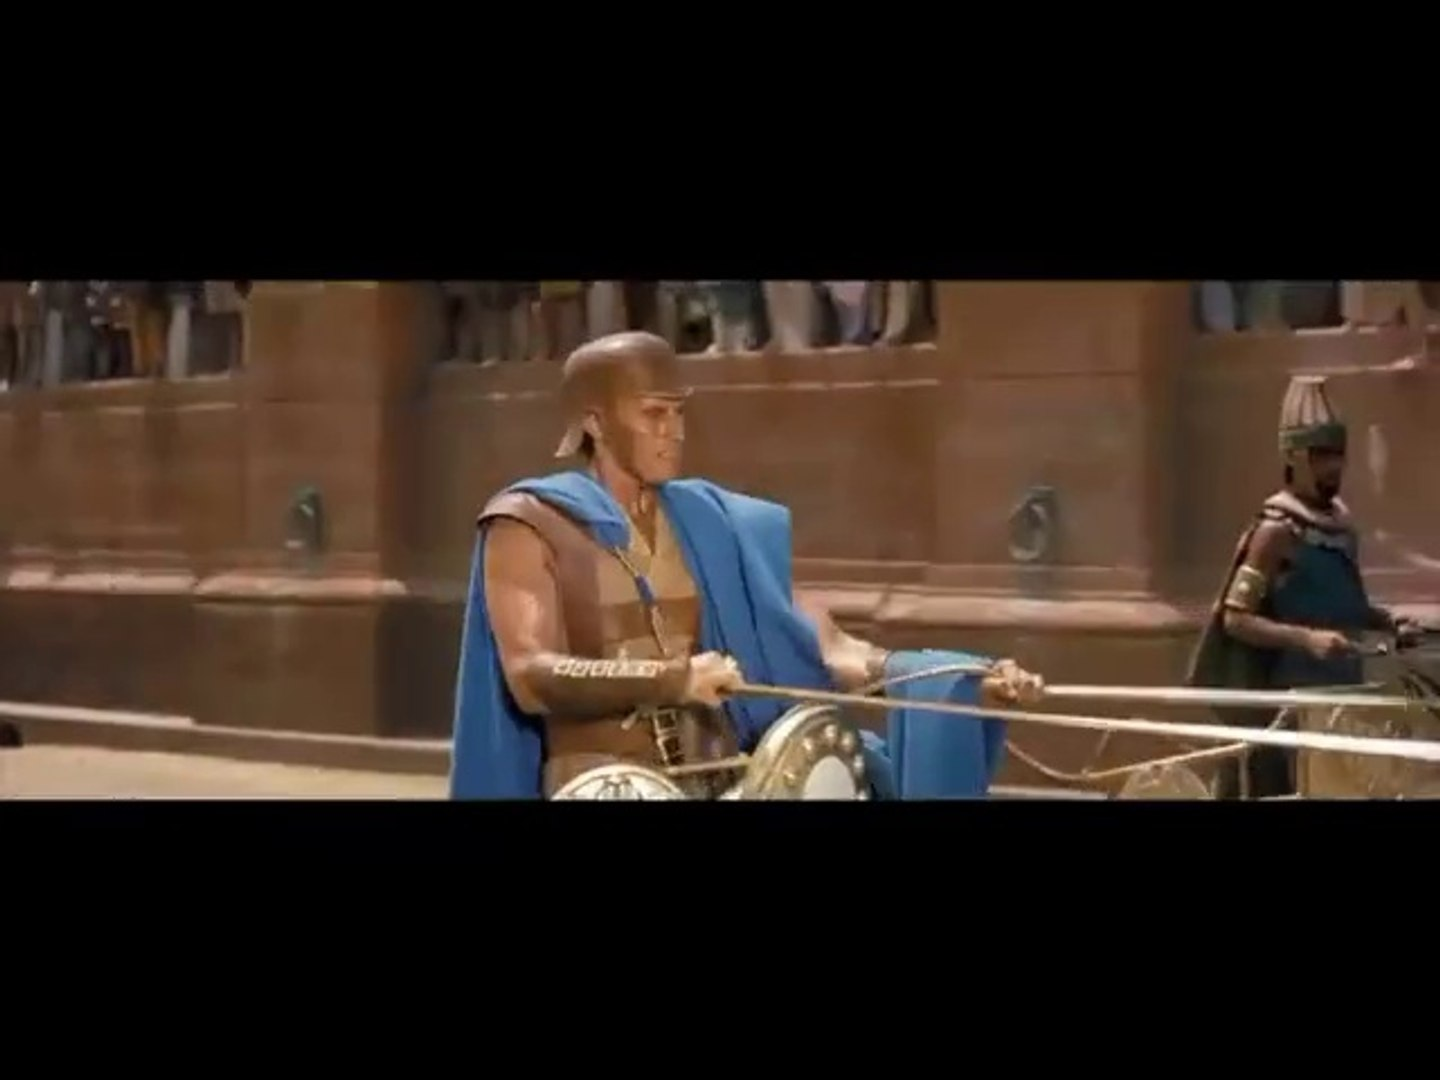 Ben Hur (1959) - Charlton Heston - Trailer (Adventure/Drama/History)